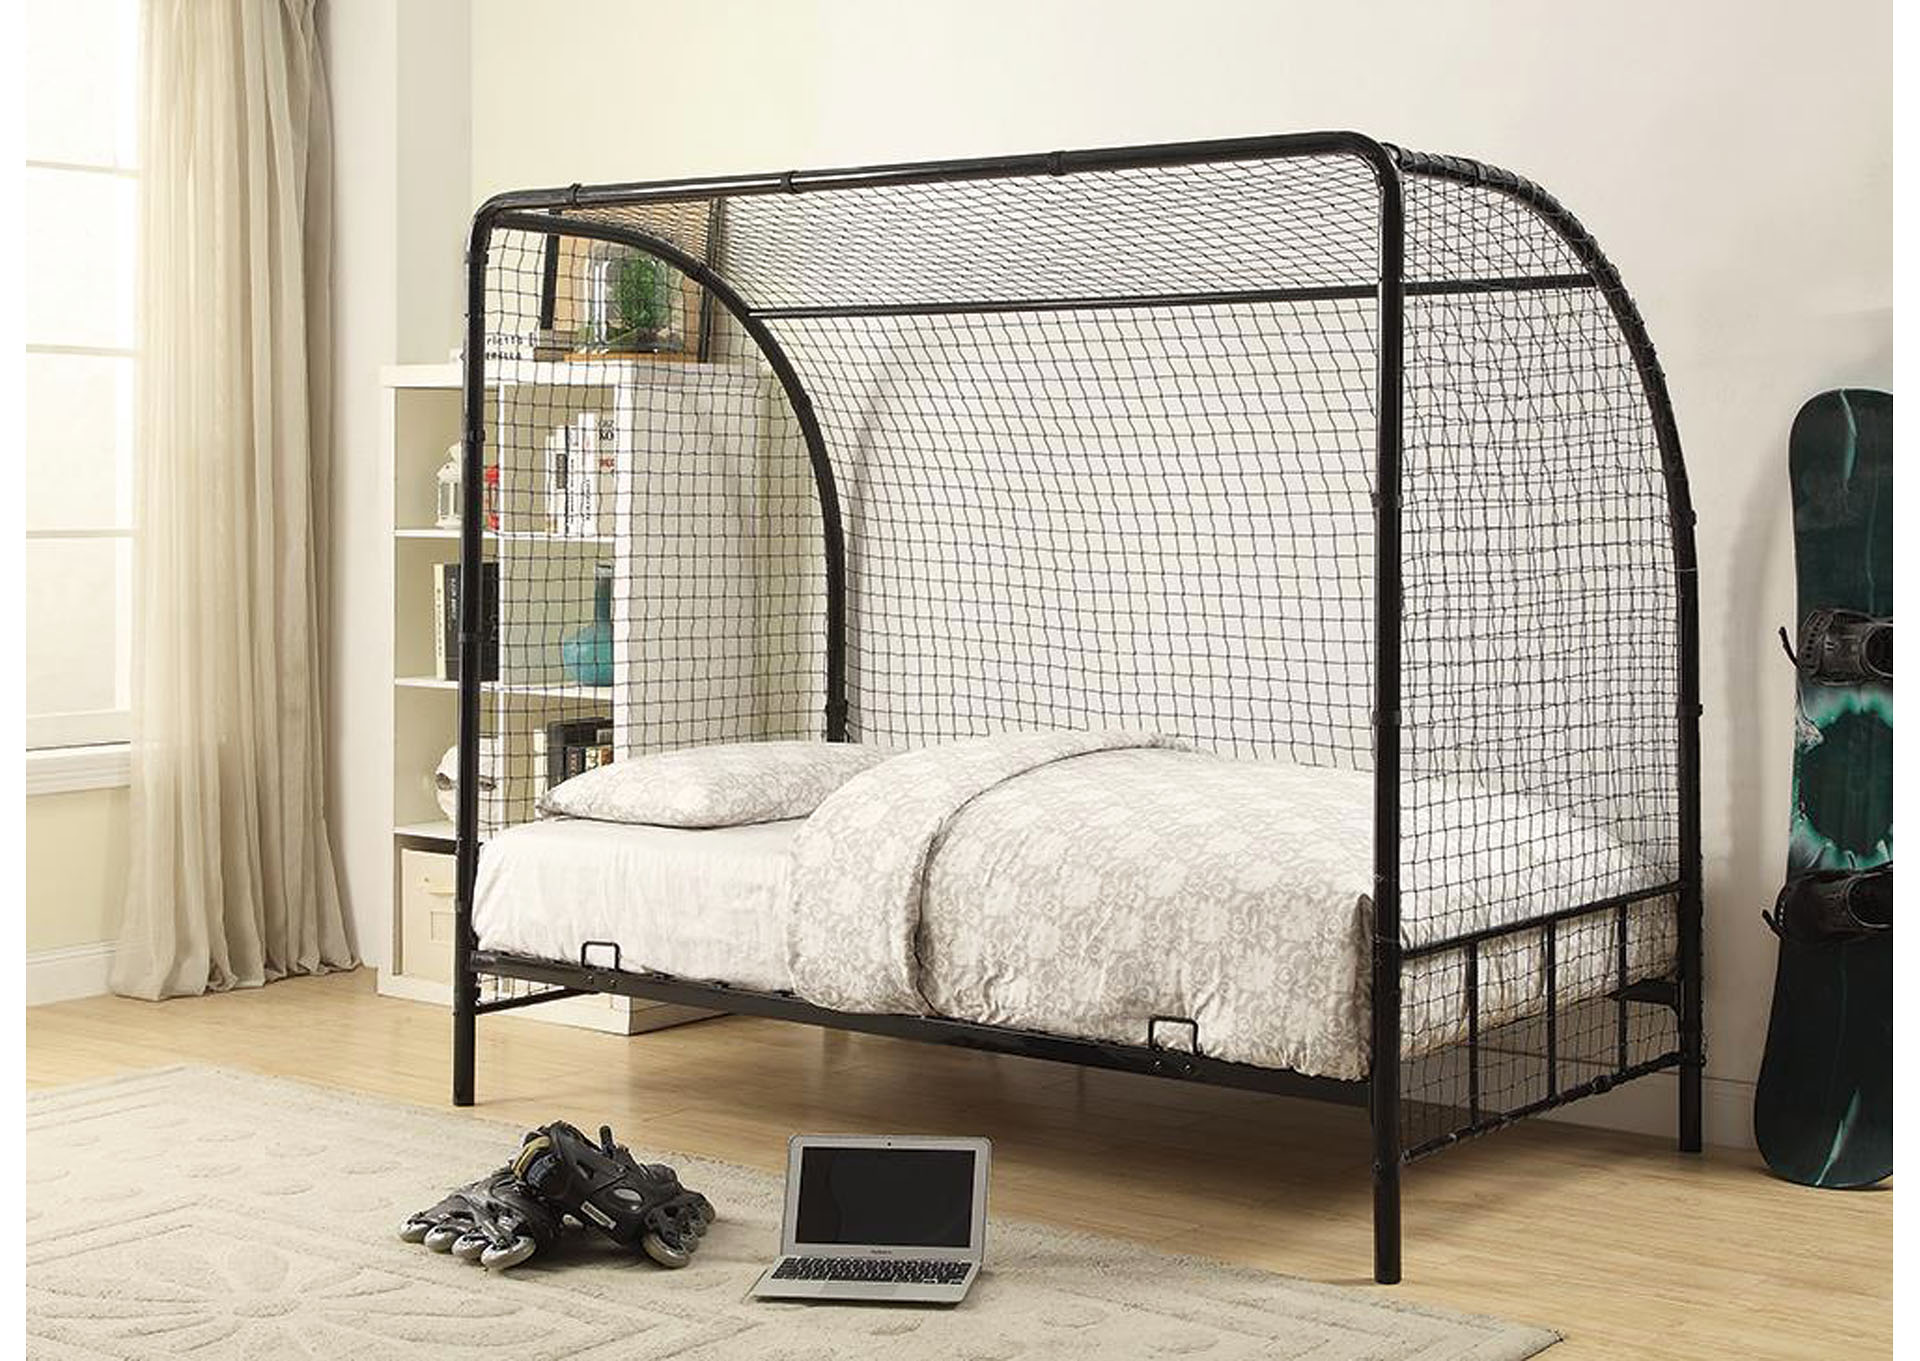 Black Twin Soccer Bed,Coaster Furniture